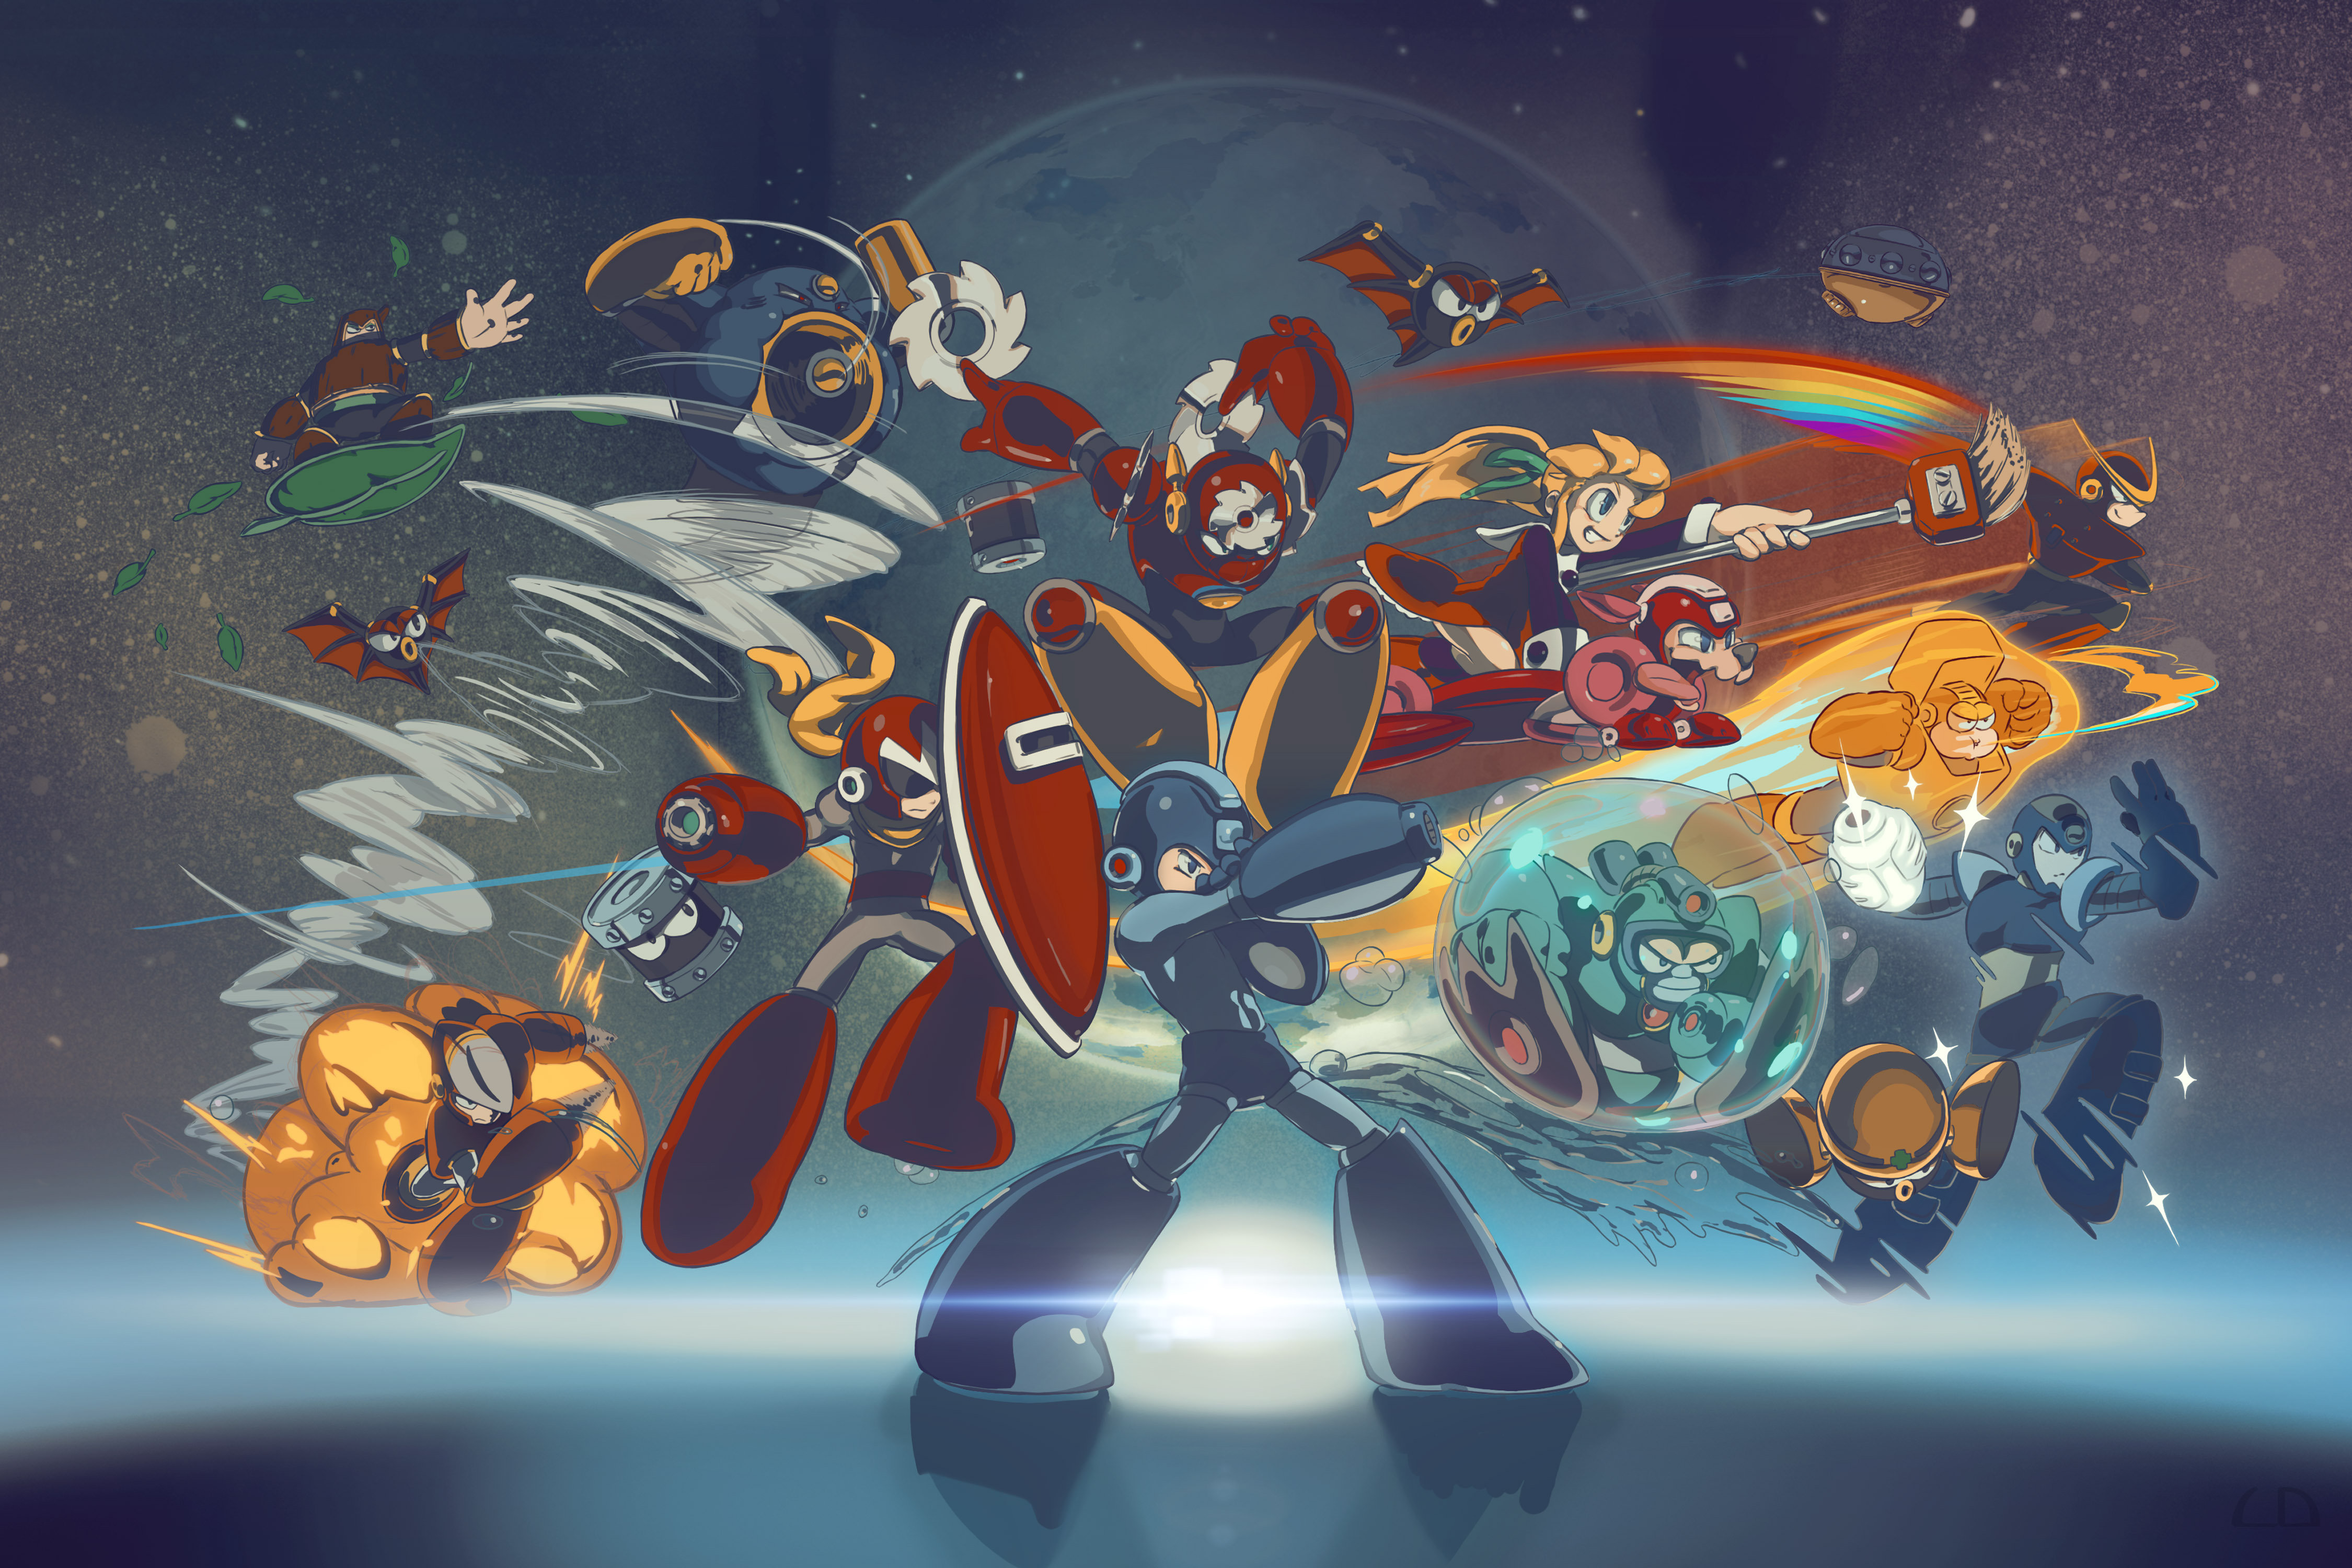 Download Mega man wallpapers 4500x3000 16611 WallpaperUP [4500x3000